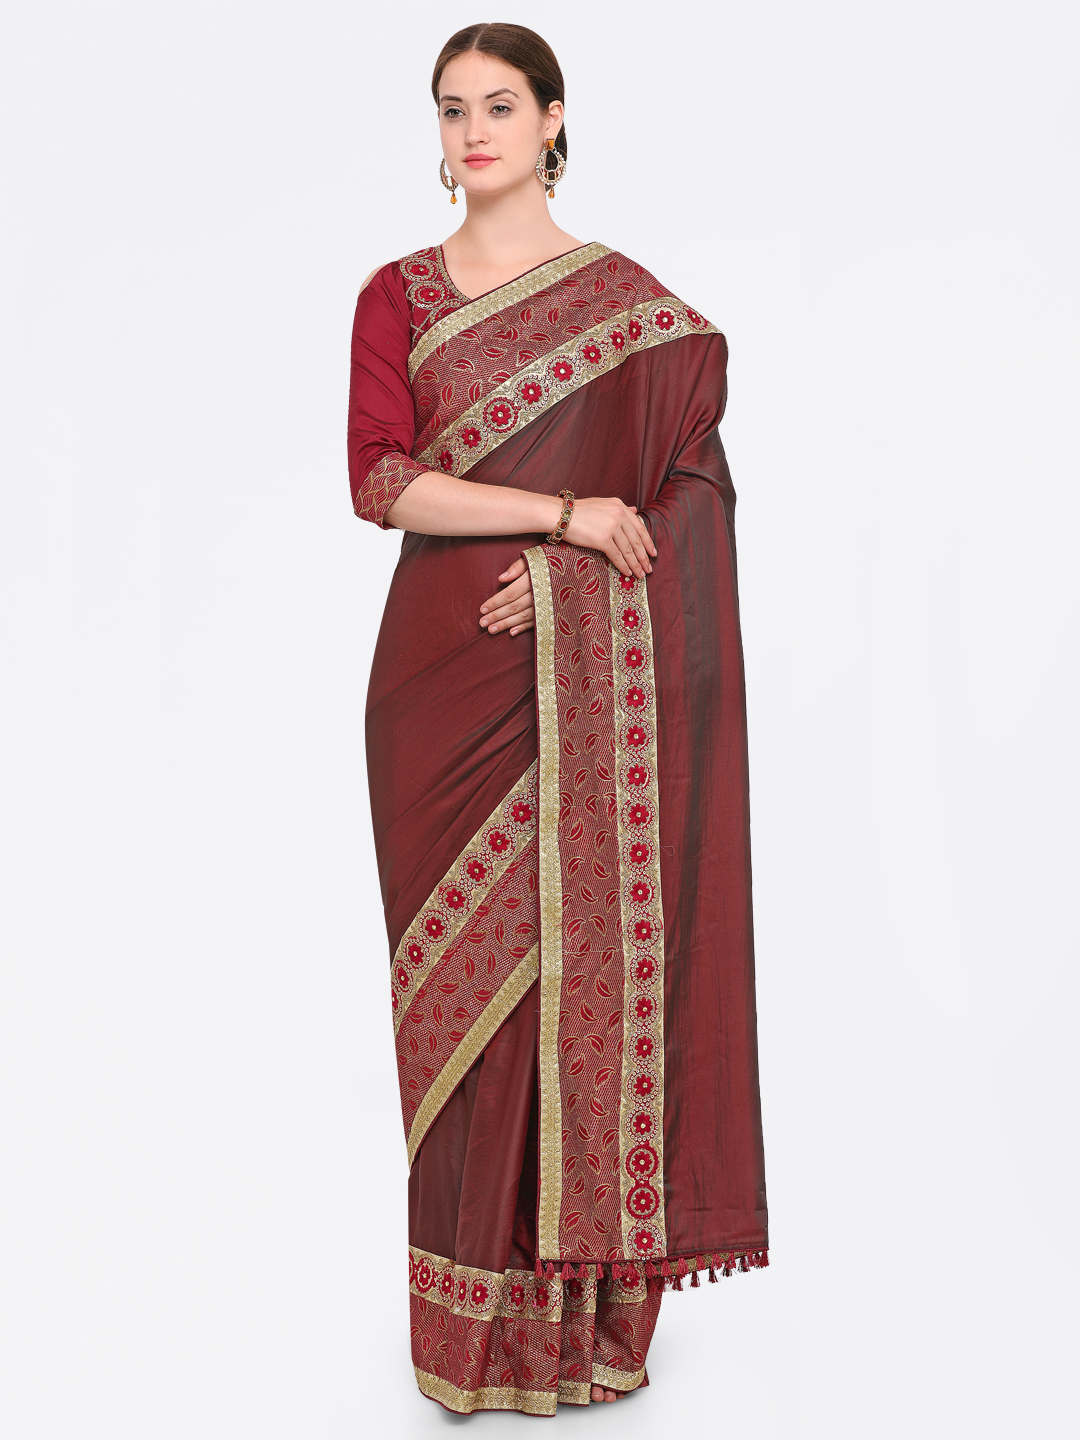 Indian Women Brown & Maroon Satin Embroidered Saree Price in India